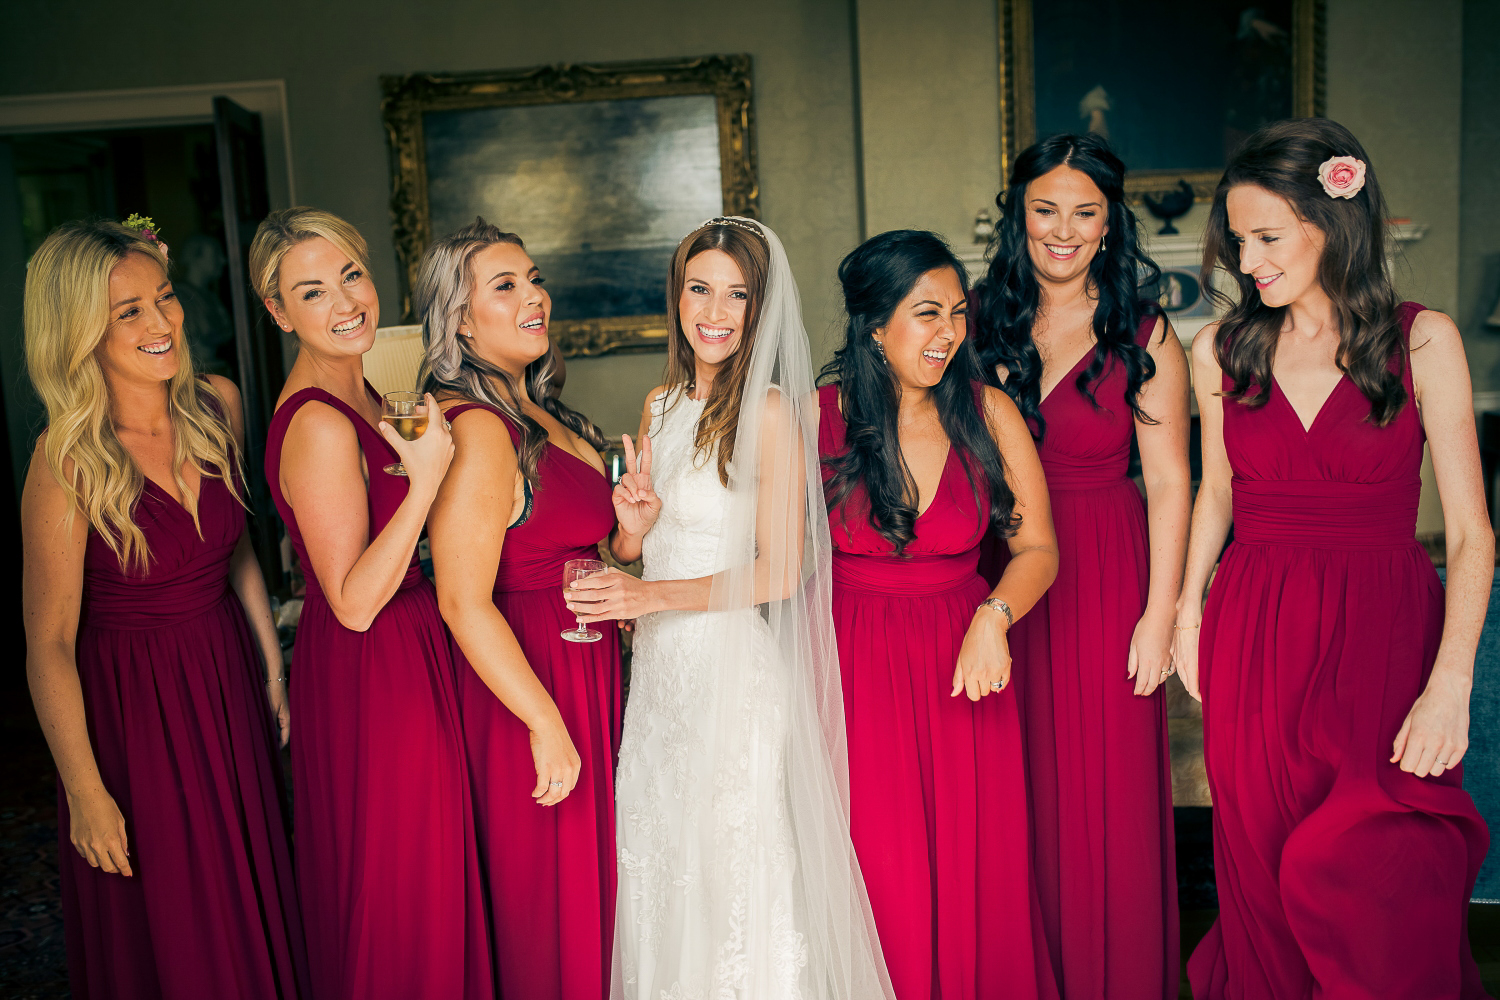 Bride and bridesmaids laugh during photo in Falconhurst wedding venue